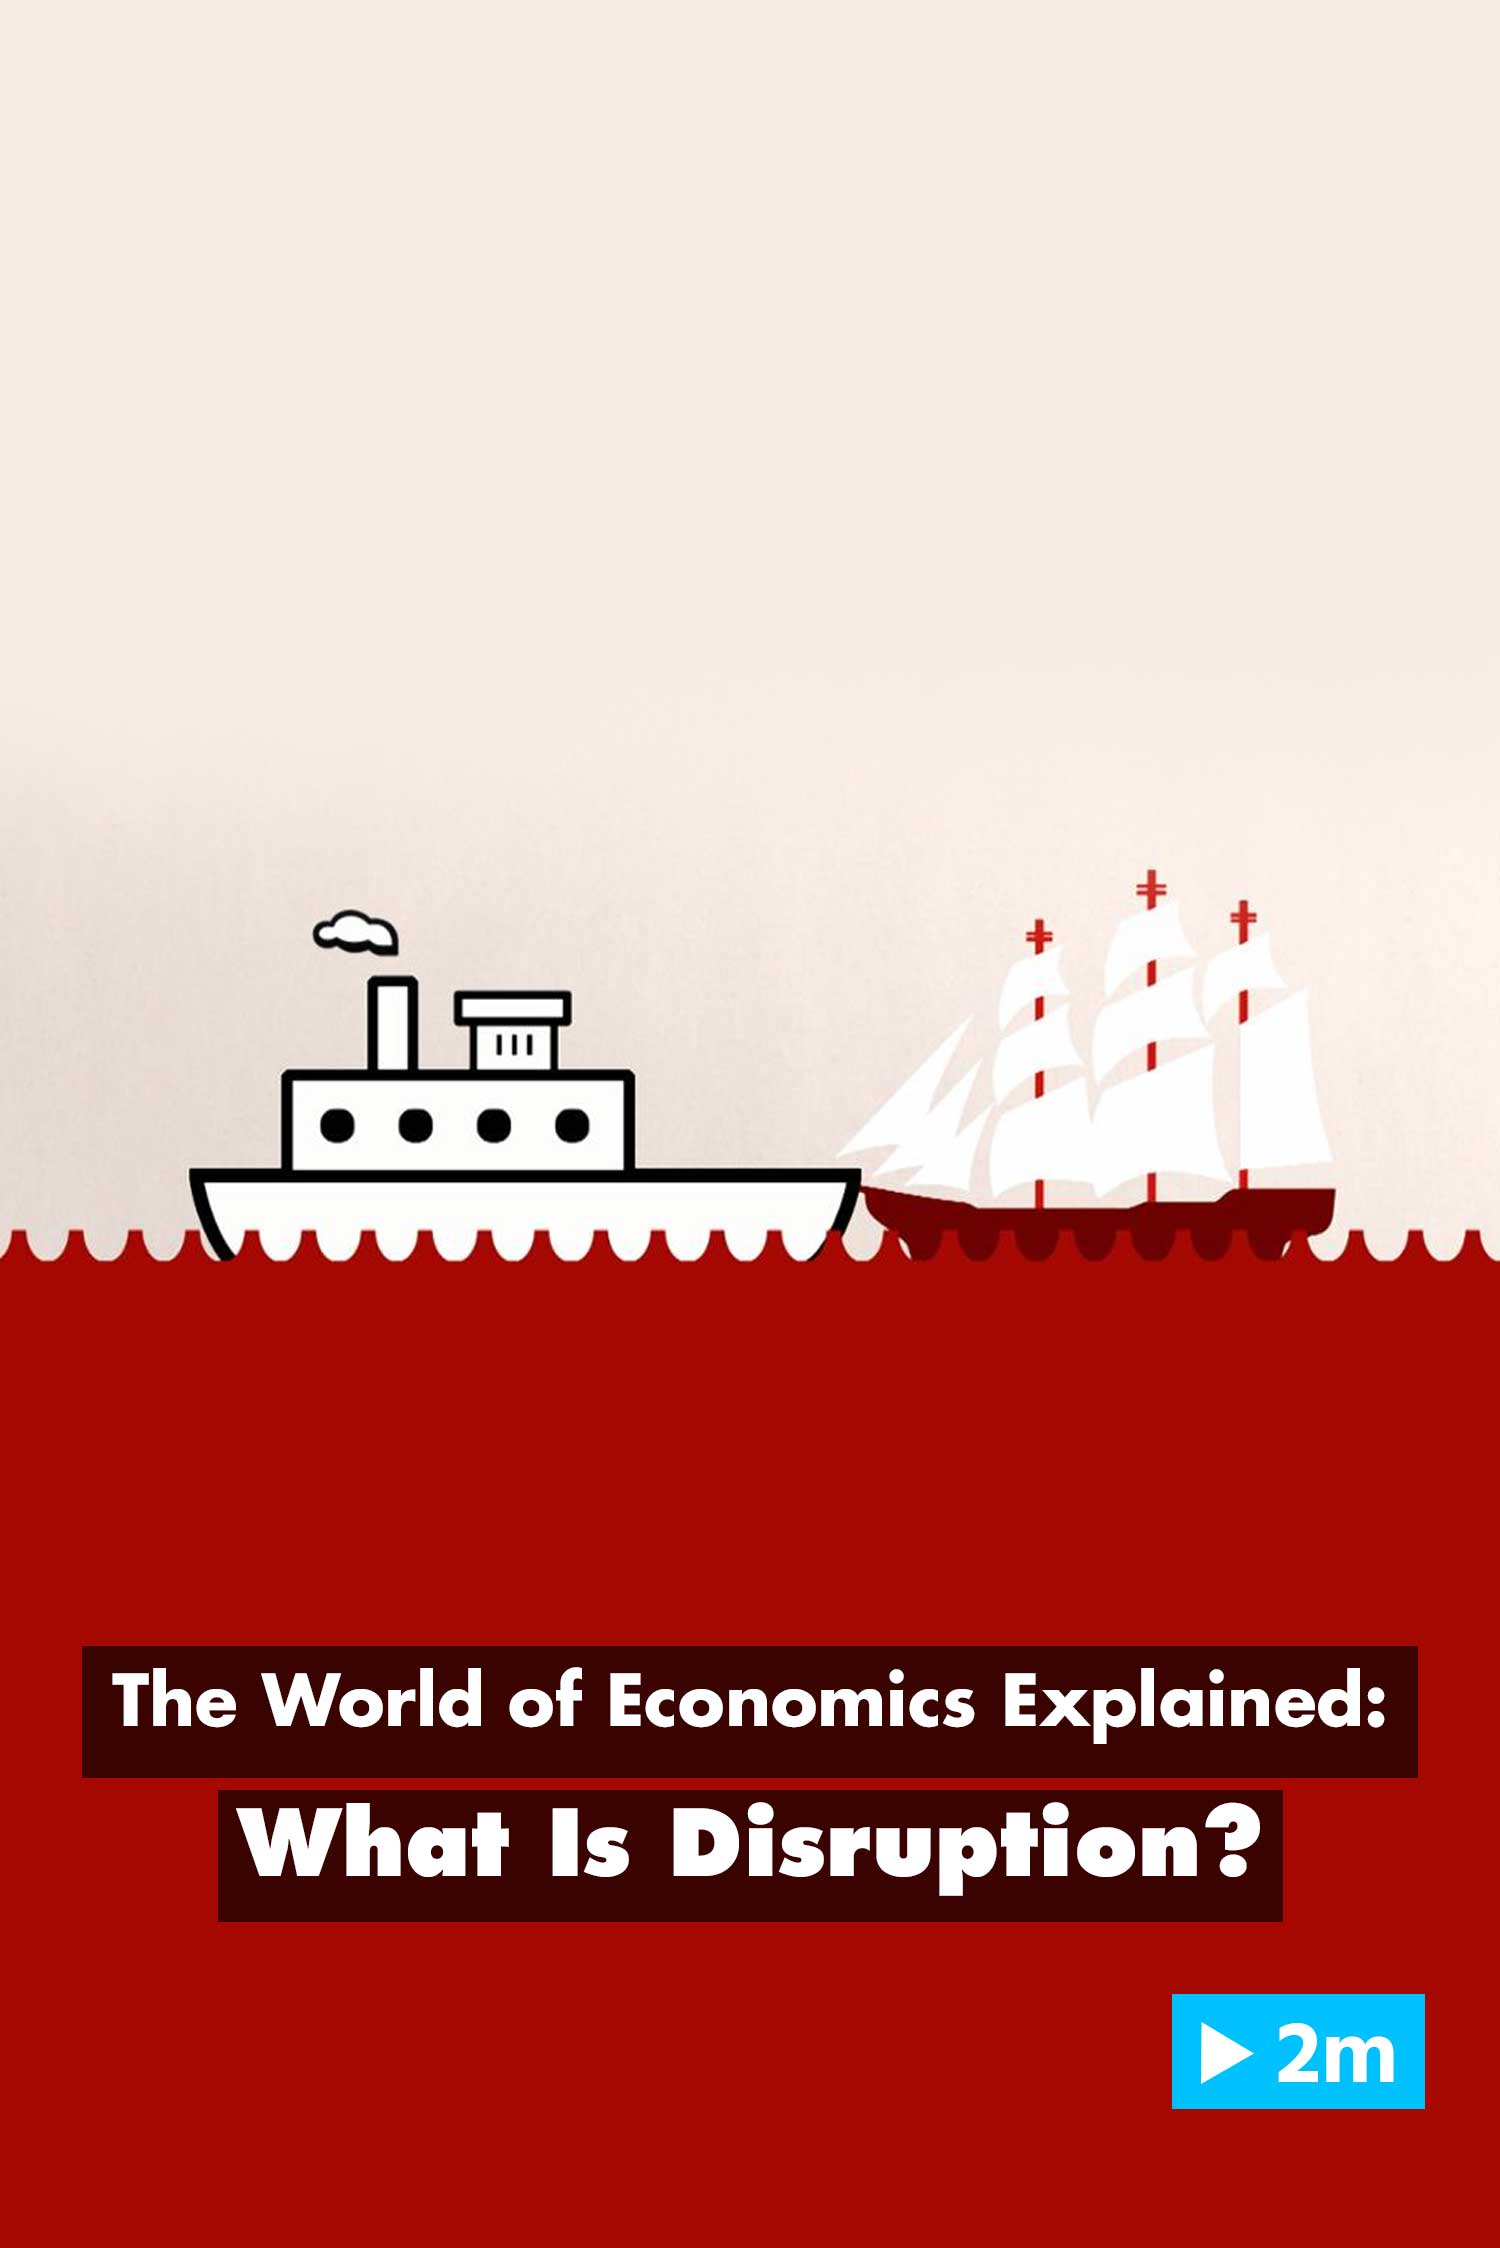 The World of Economics Explained: What is disruption?